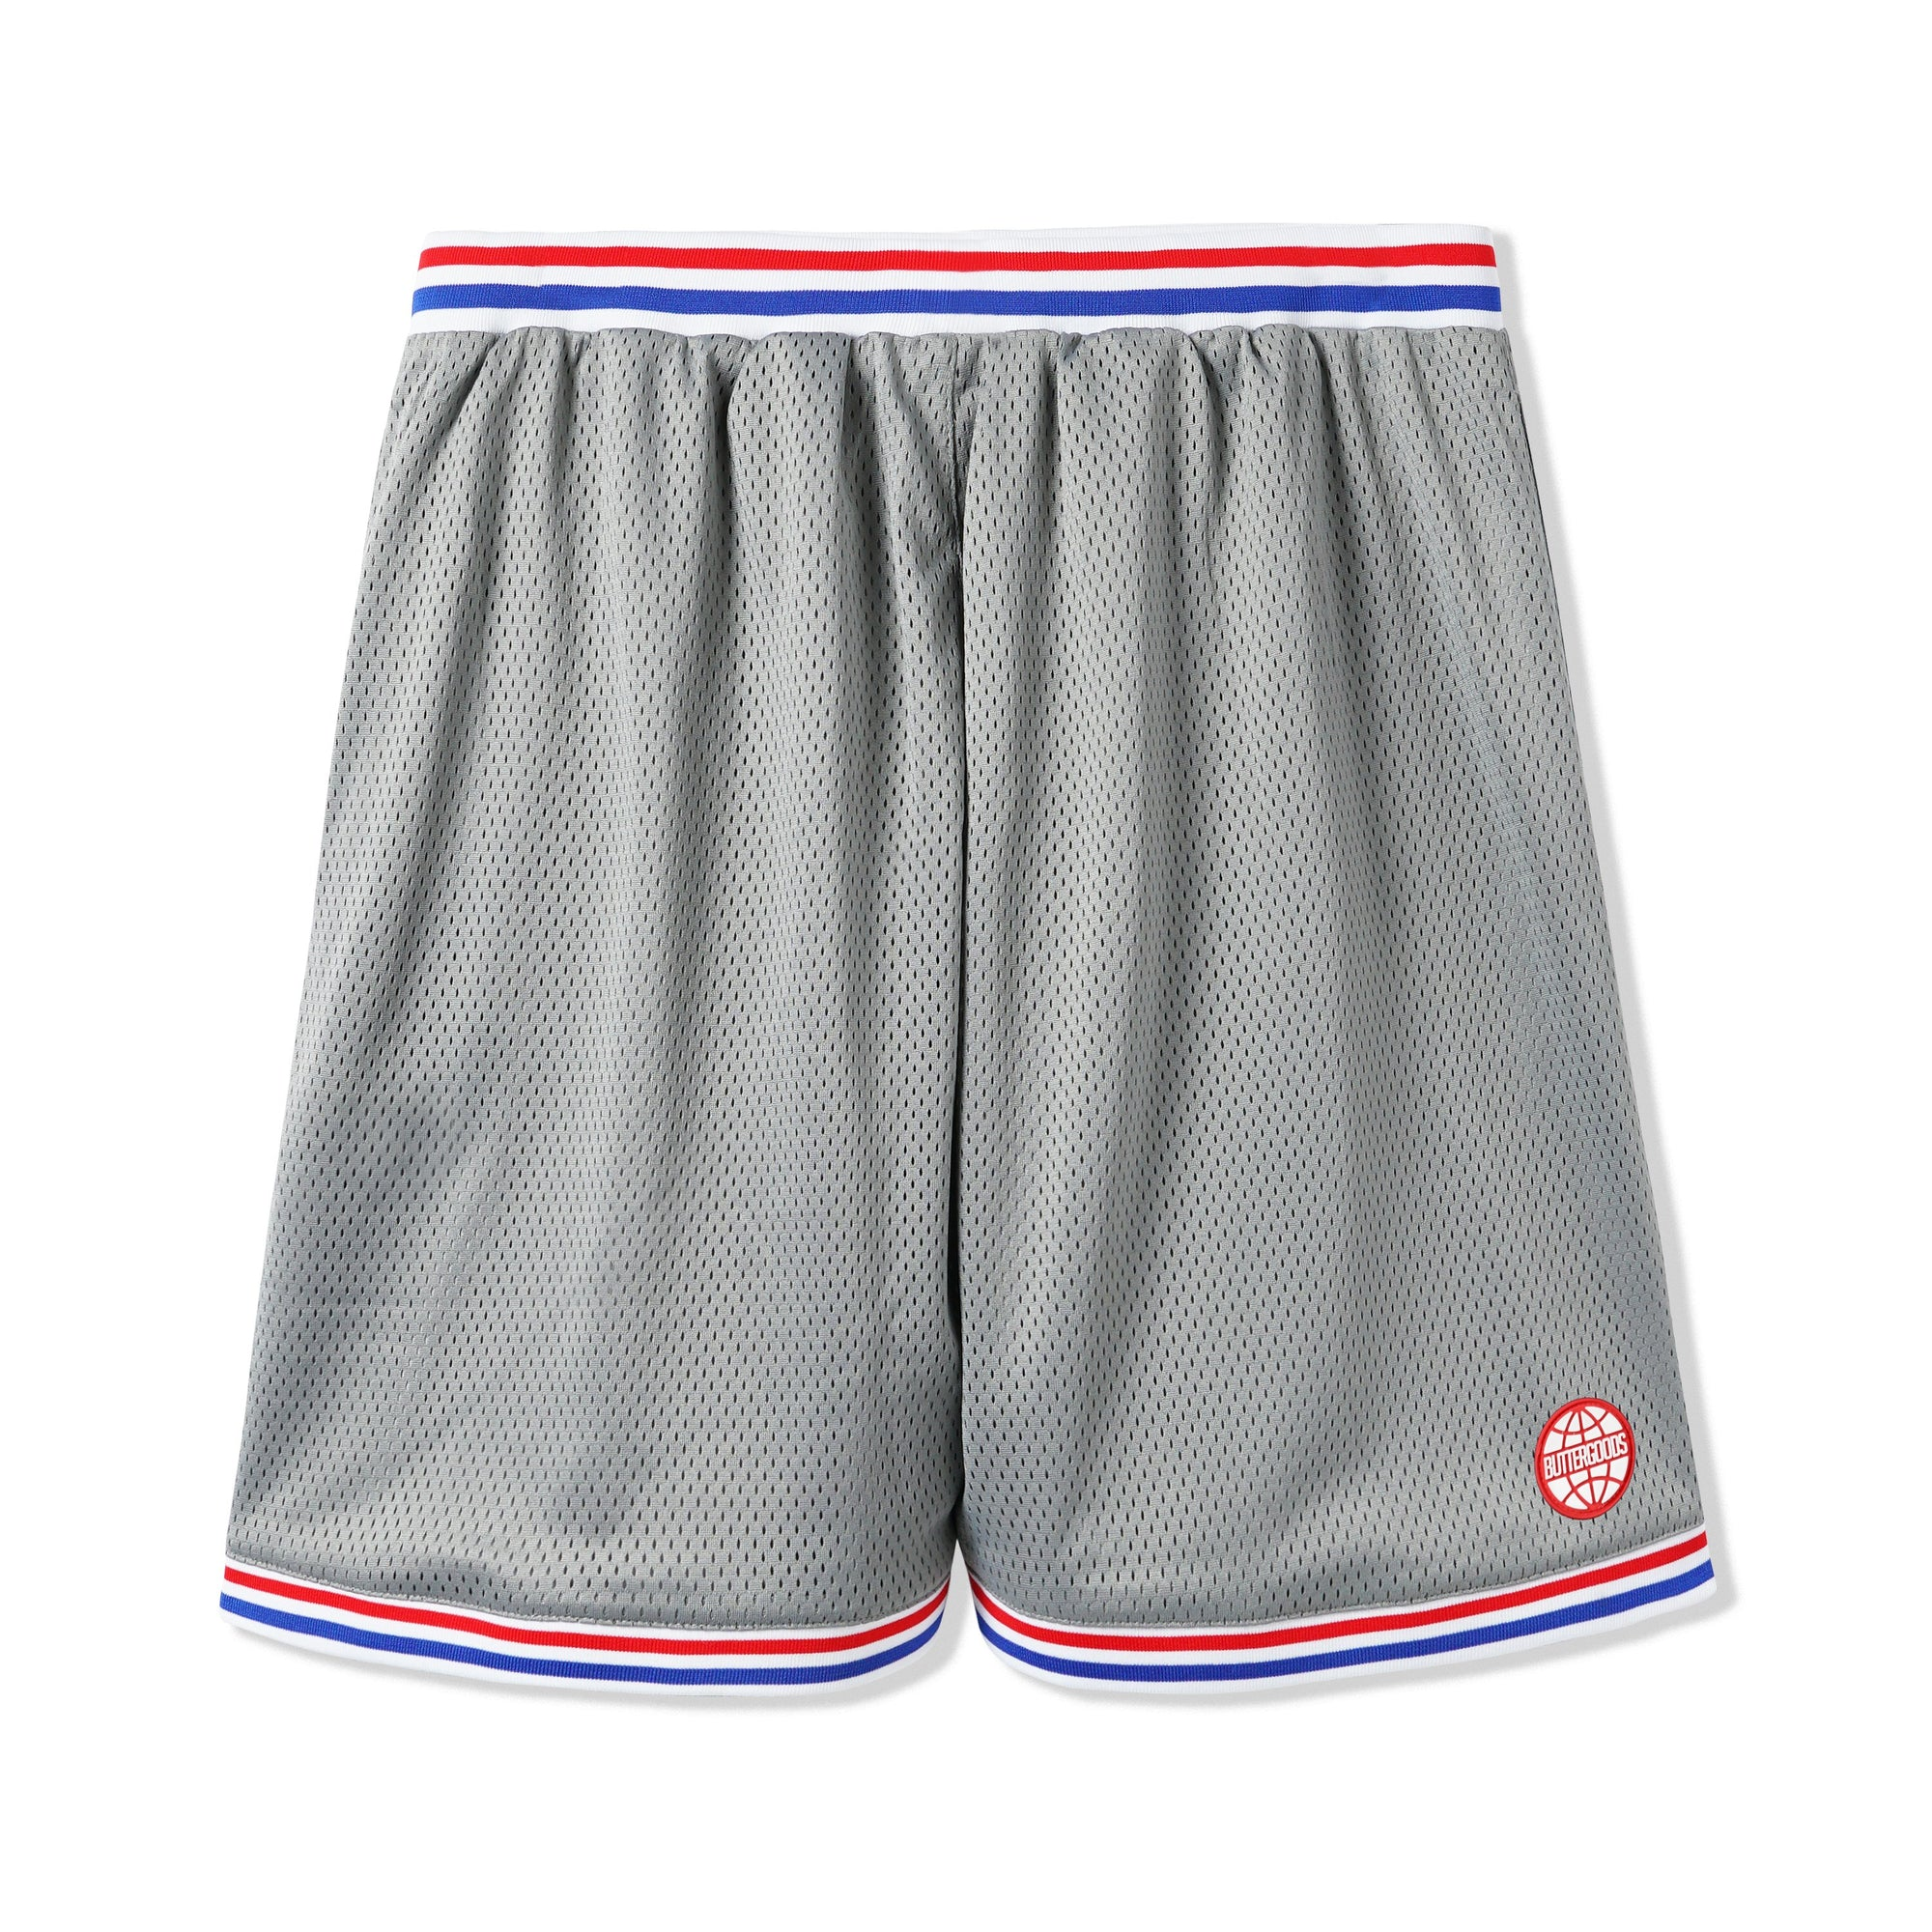 Butter Goods Worldwide Mesh Shorts Product Photo #1